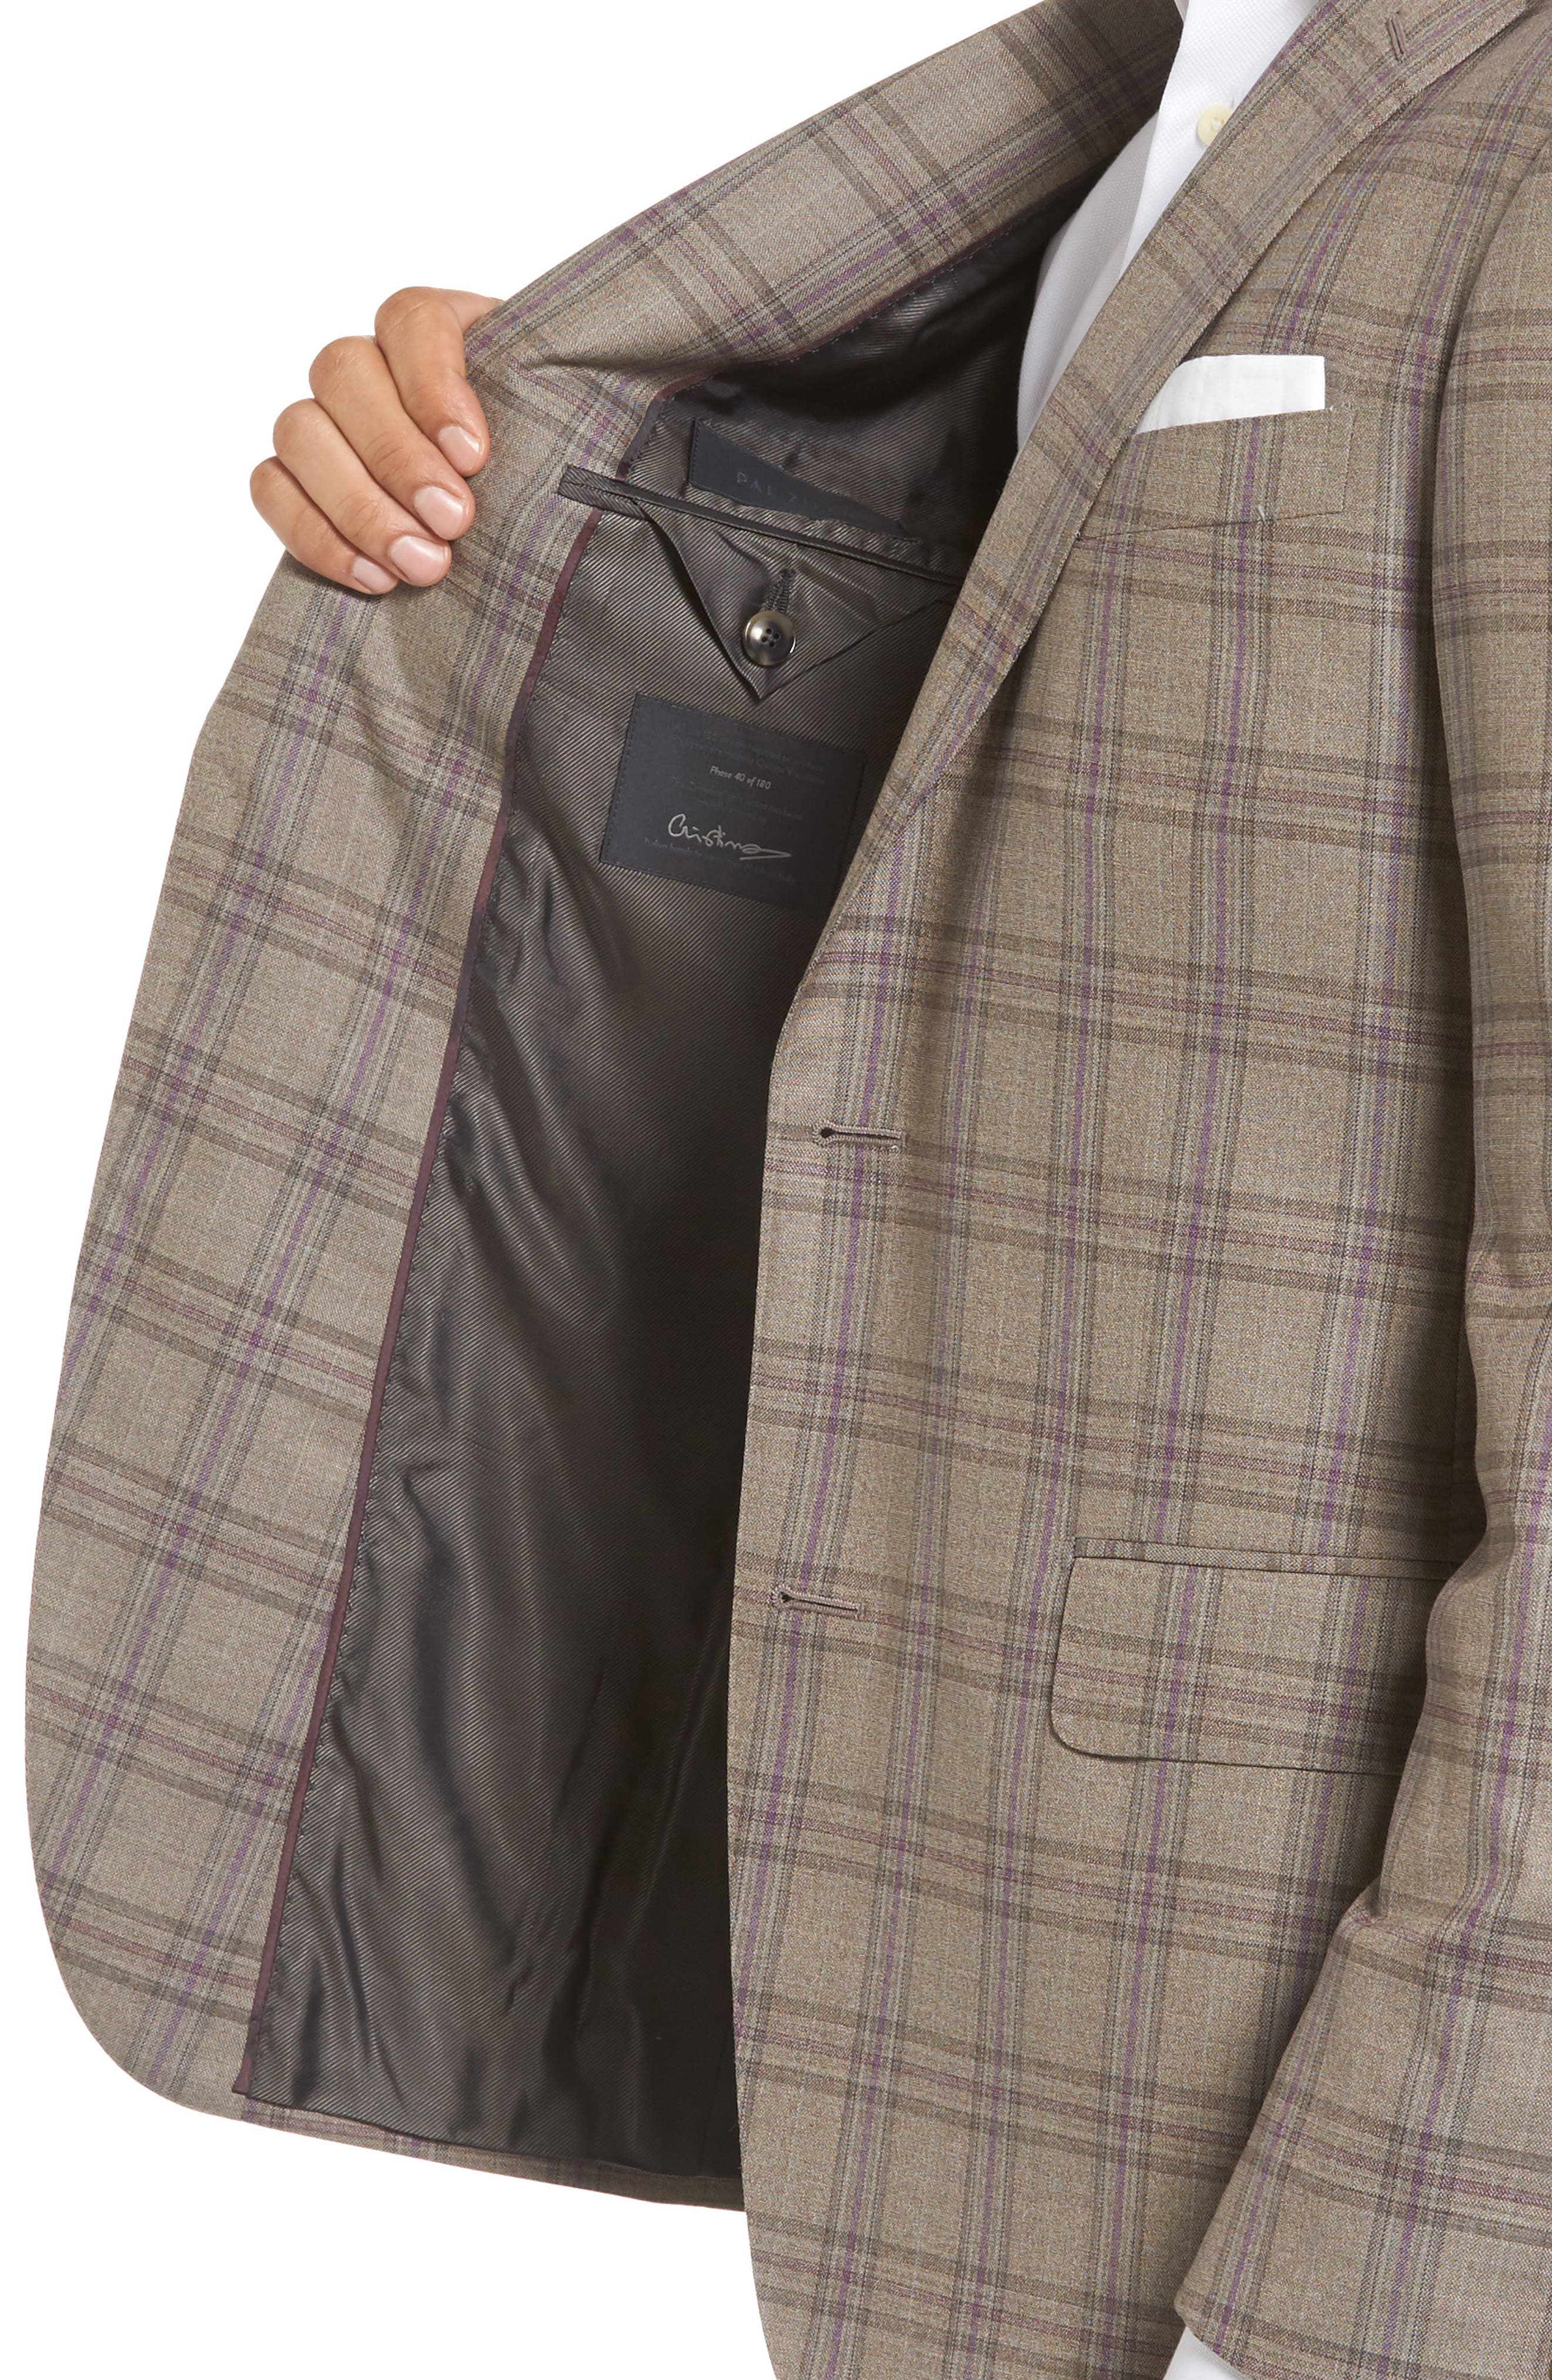 Classic Fit Plaid Wool Sport Coat,                             Alternate thumbnail 4, color,                             Light Brown